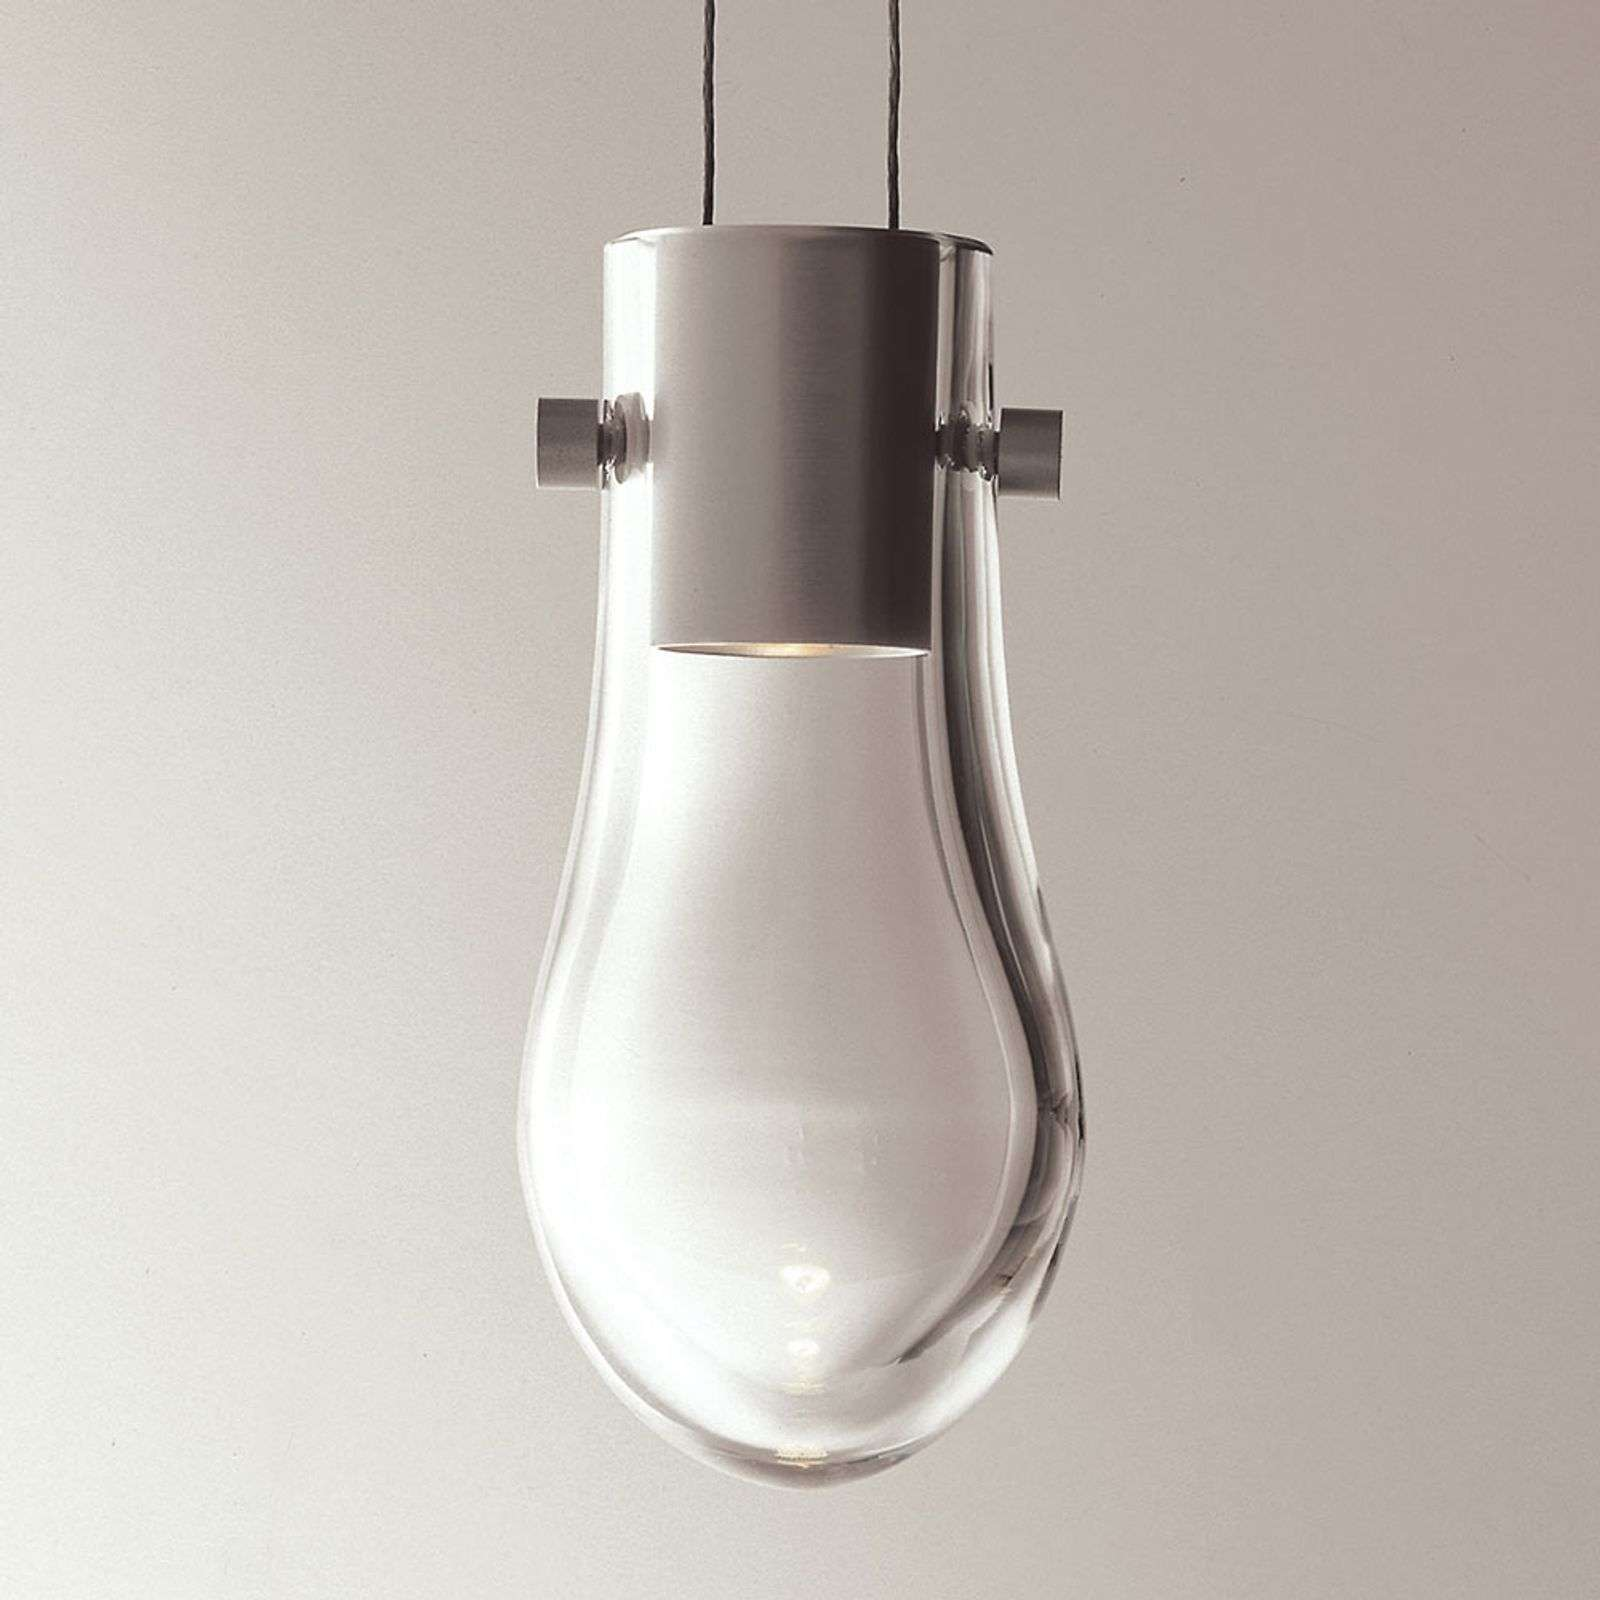 Suspension LED de designer Drop à hauteur réglable